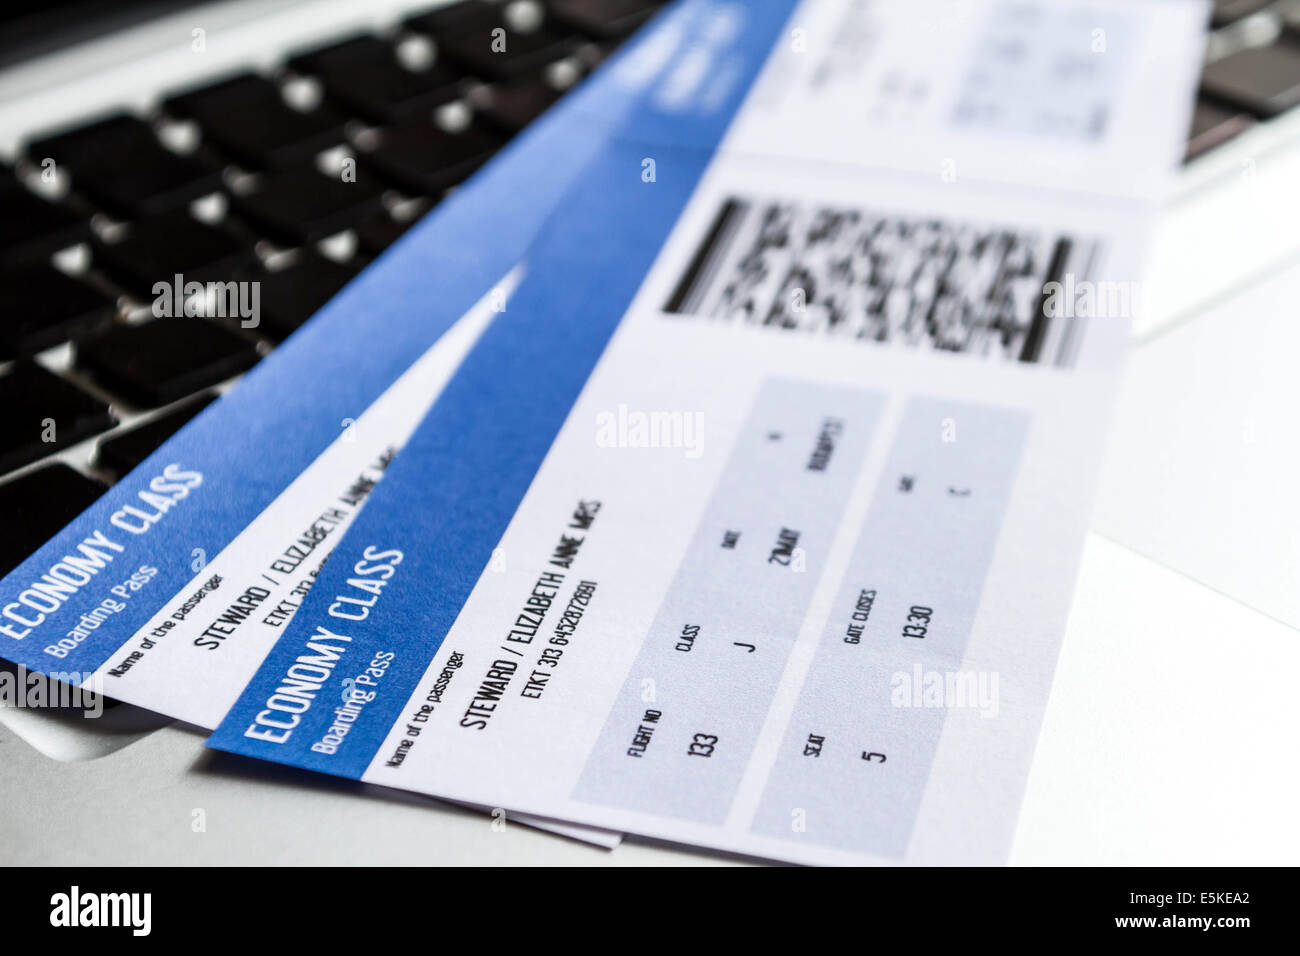 Airline tickets over the keyboard of a laptop - Stock Image